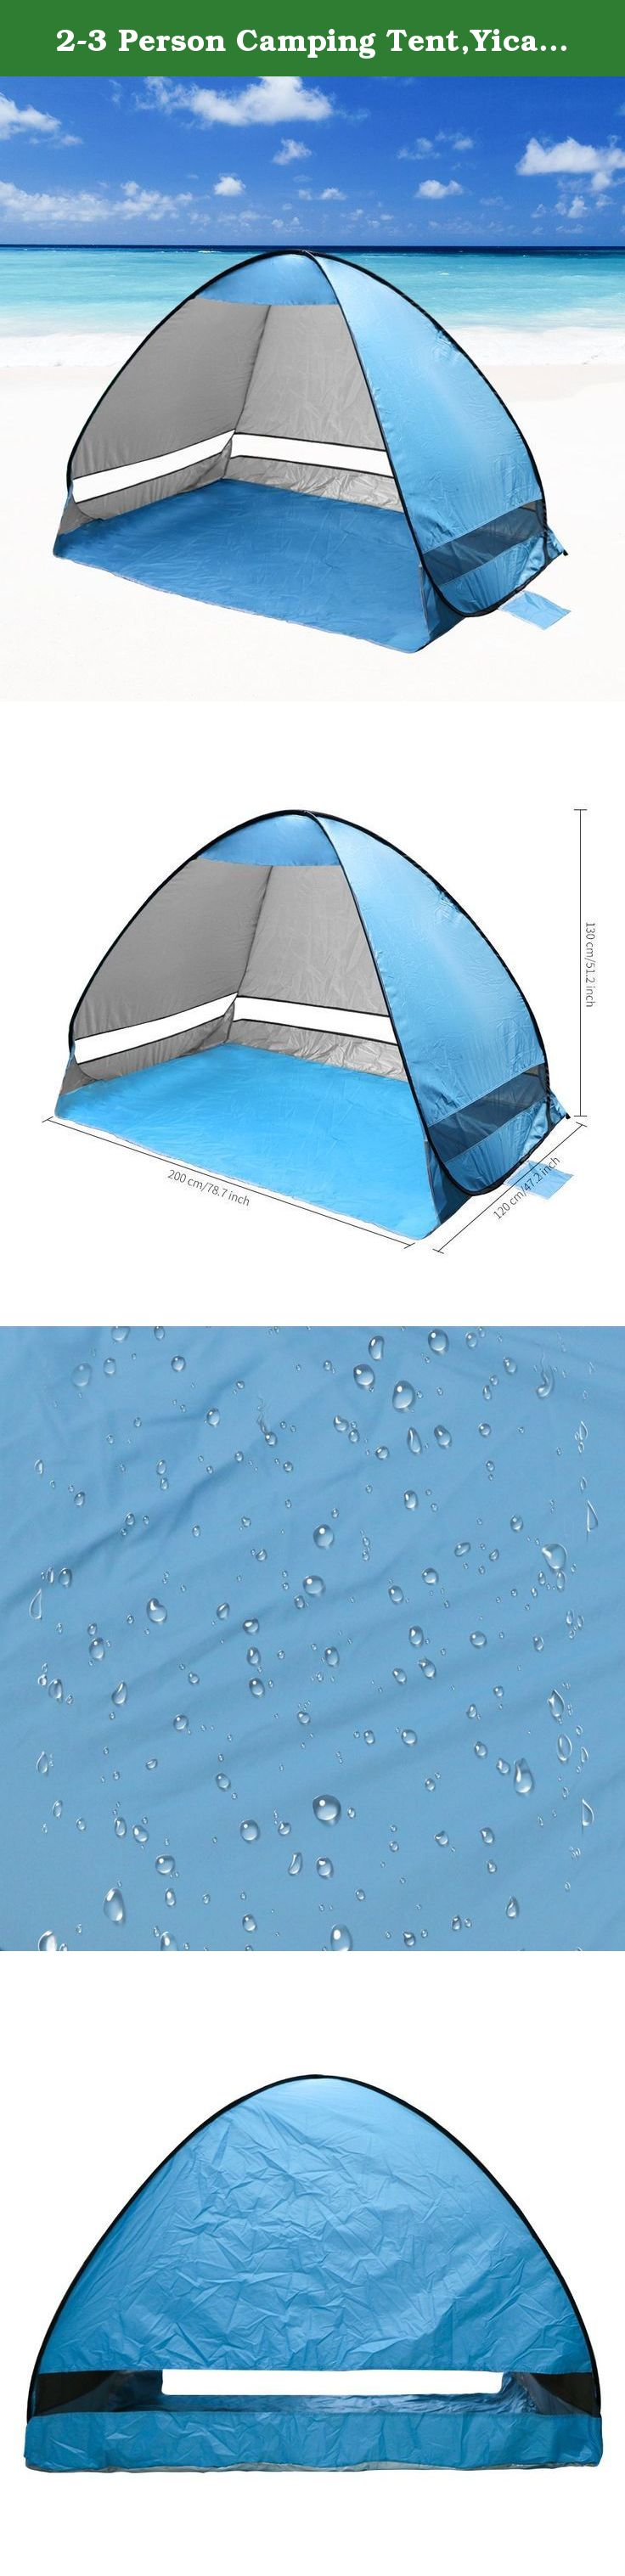 23 person camping tentyica outdoors pop up lightweight beach canopy tentuv 50 family sport sun shelter play tentfor